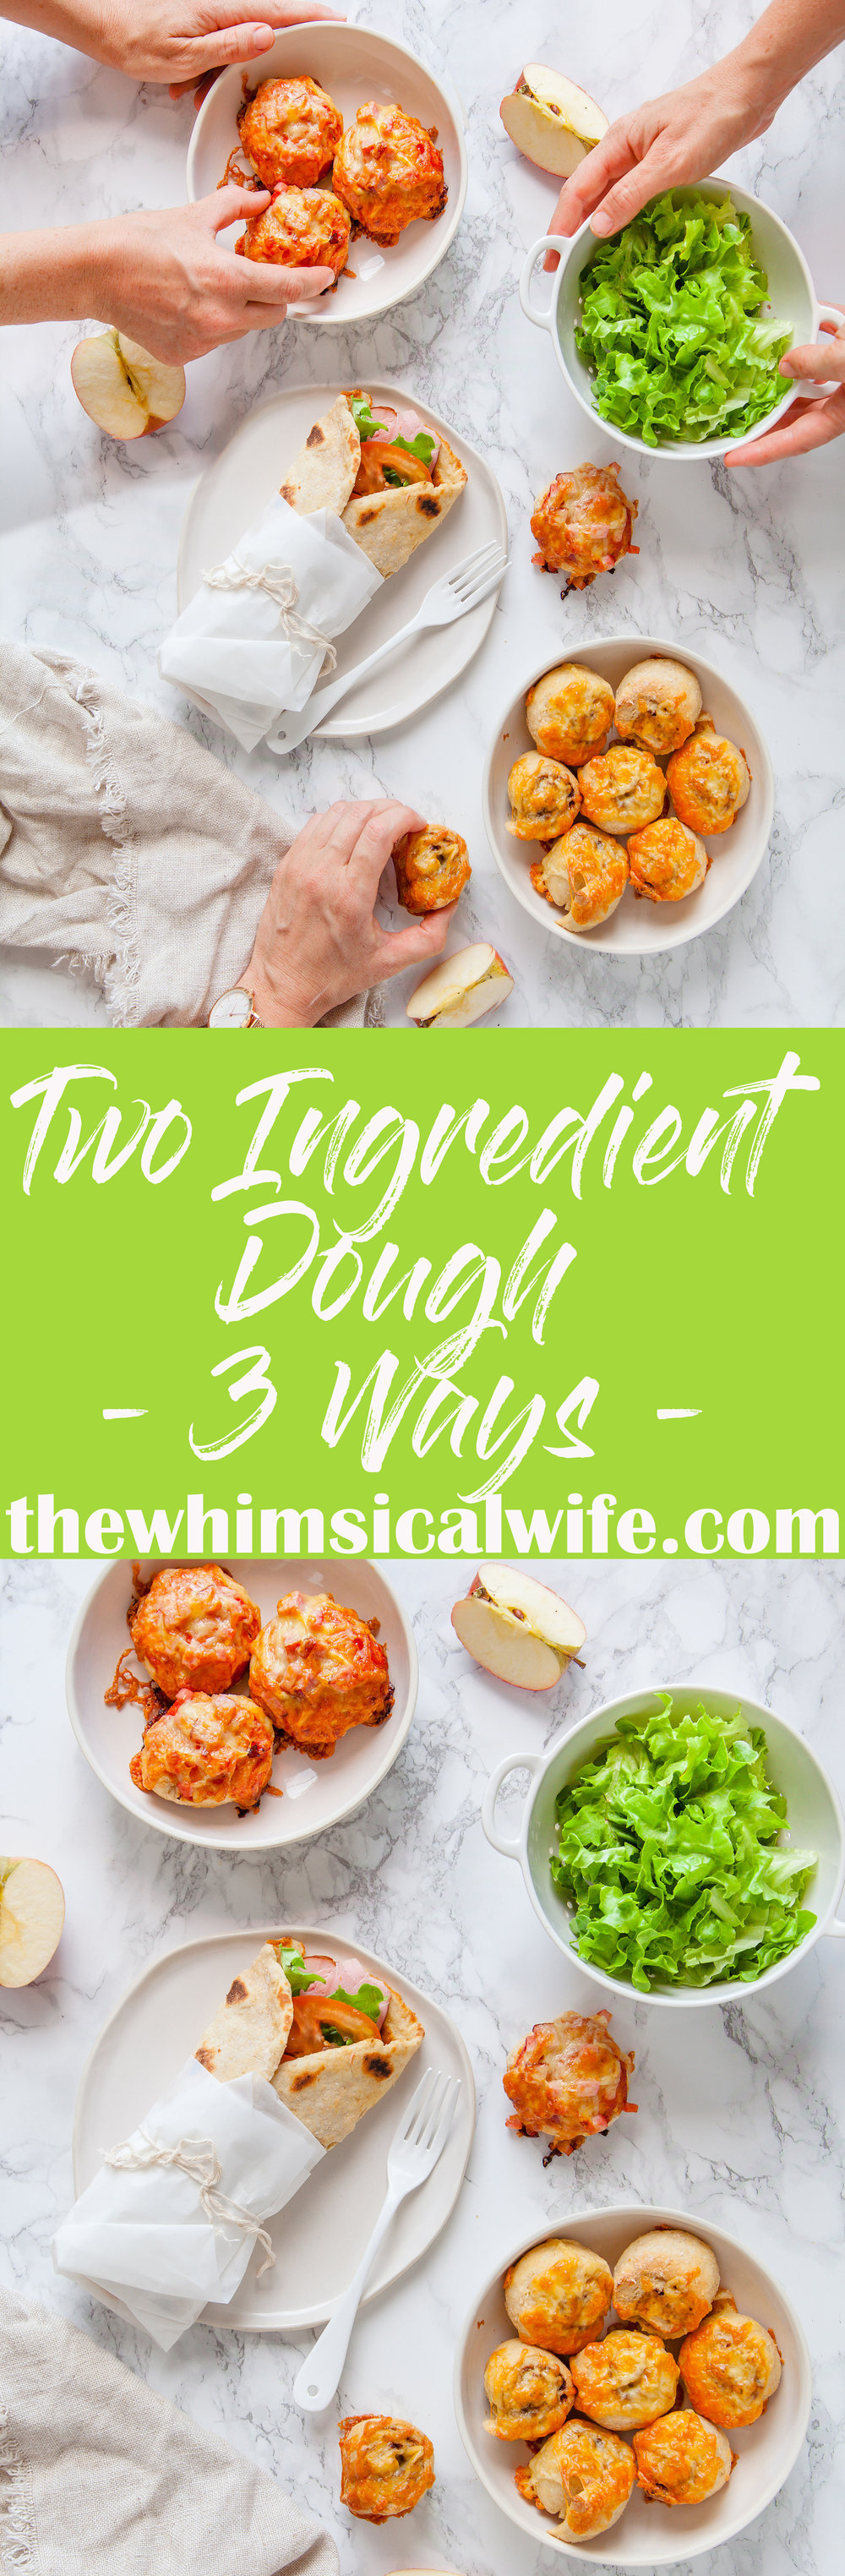 In My Kitchen - Two Ingredient Dough - 3 Ways + Video | The Whimsical Wife